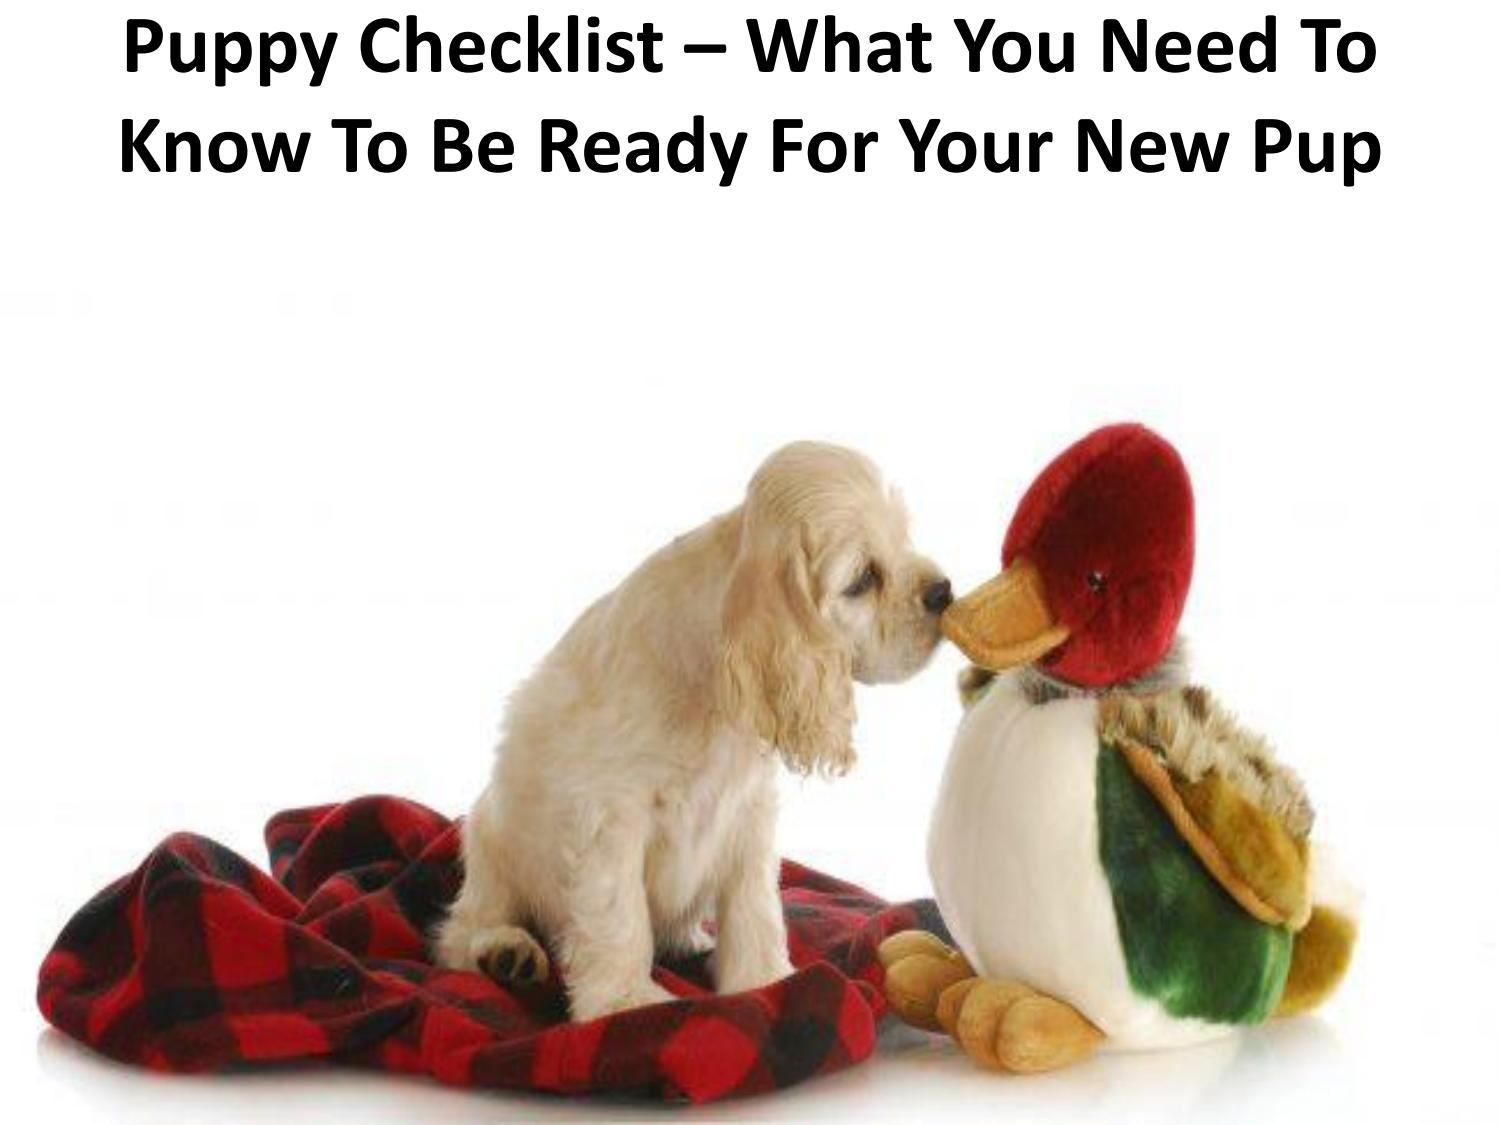 Puppy Checklist What You Need To Know To Be Ready For Your New Pup By Nuvet Plus Reviews Issuu